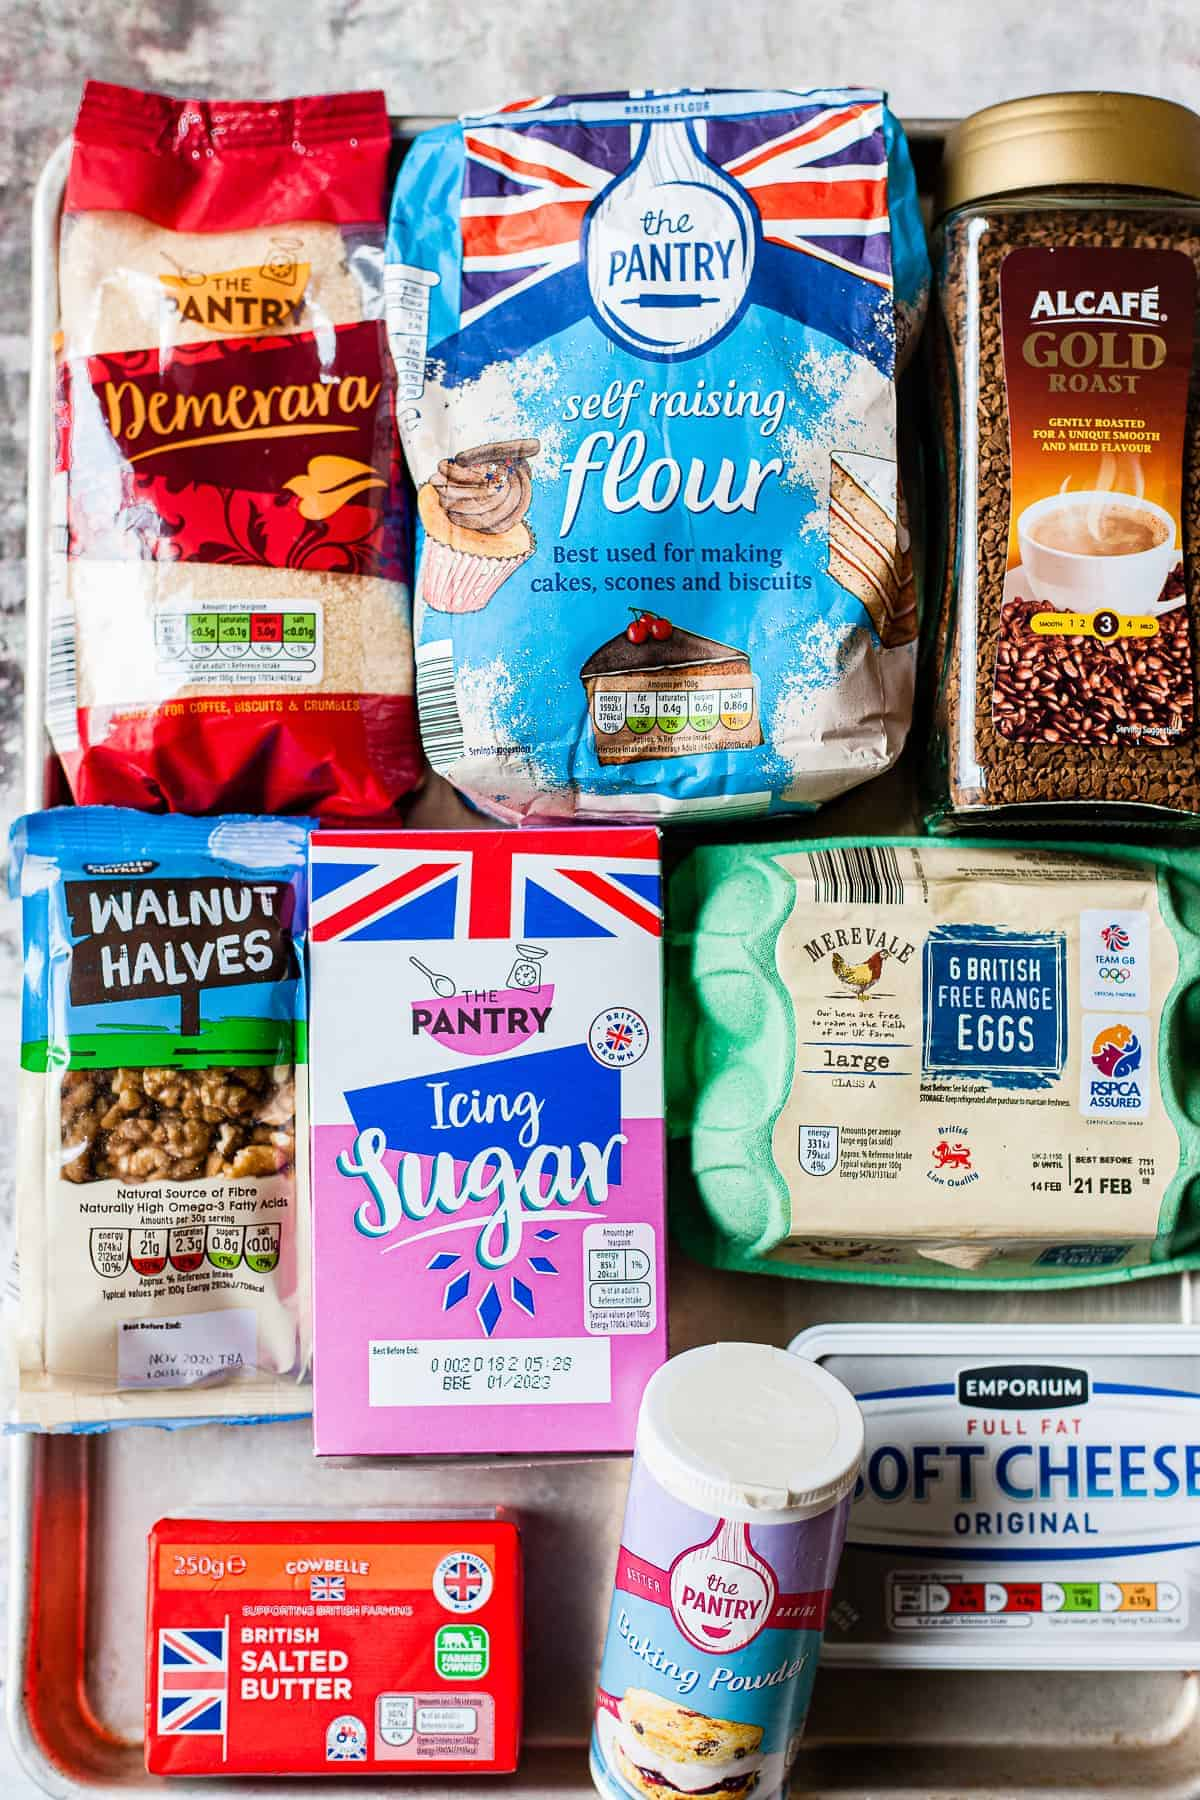 Ingredients for easy coffee walnut cake from Aldi.